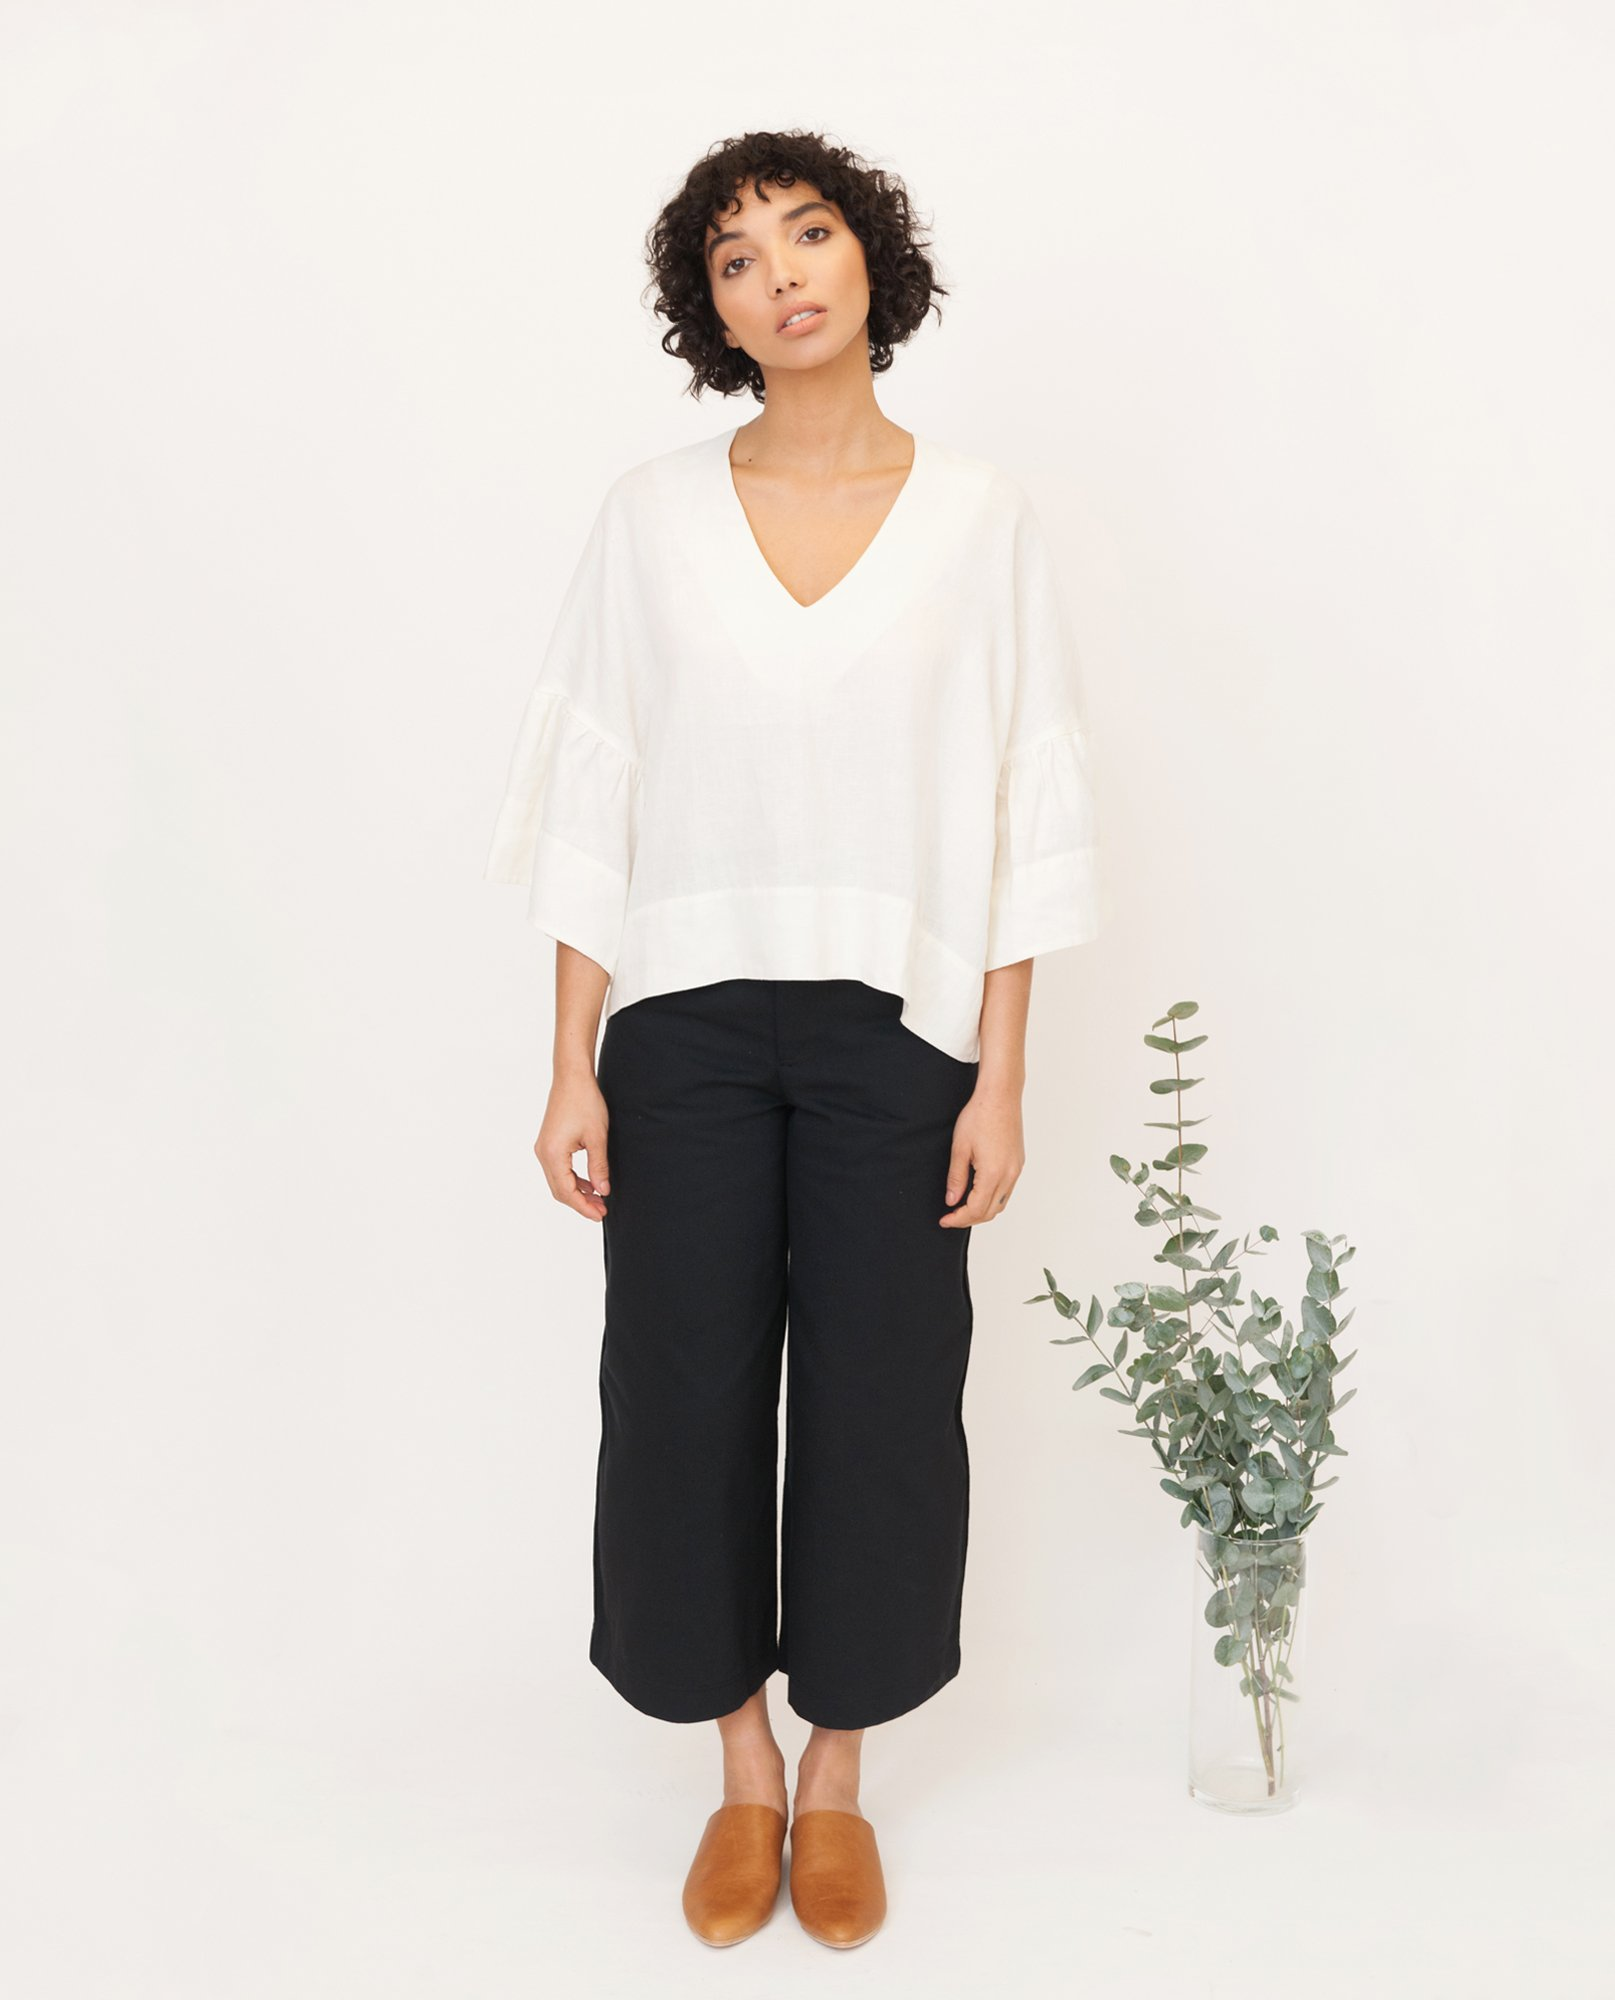 RITA-JO Linen Top In Off White from Beaumont Organic